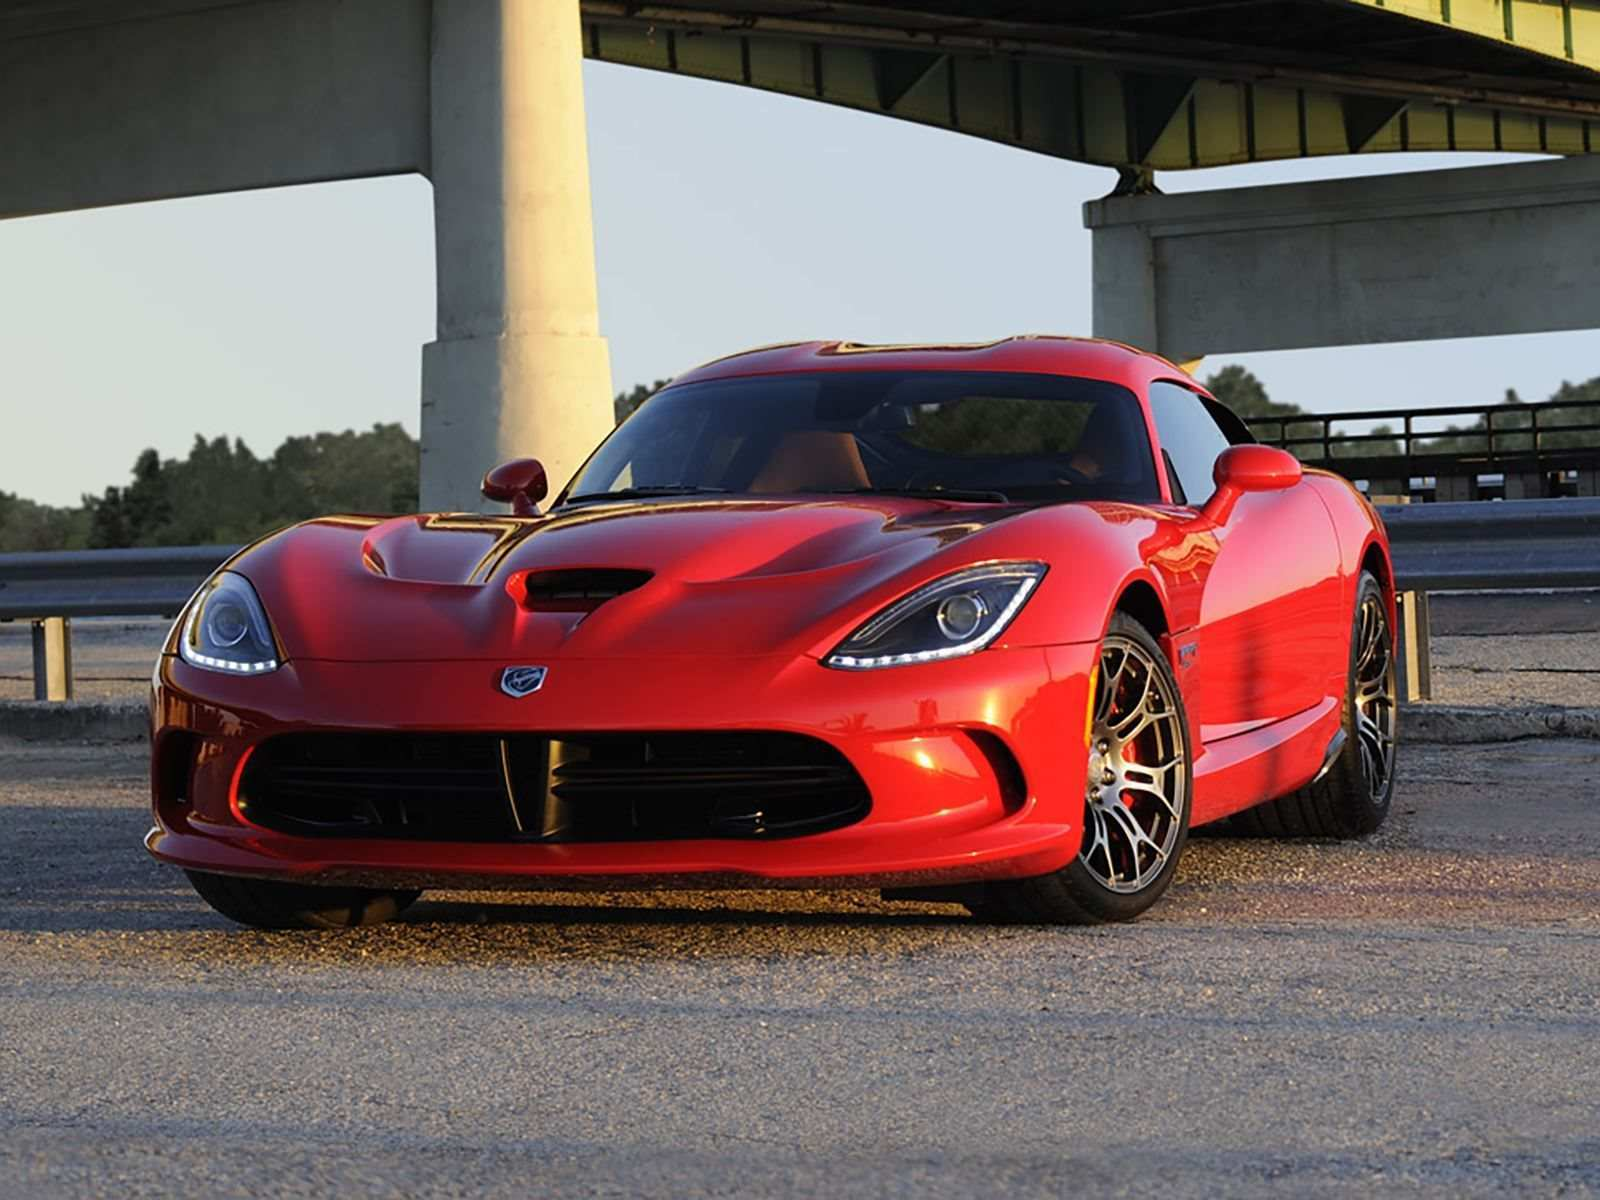 24 New 2019 Dodge Viper ACR Release Date And Concept